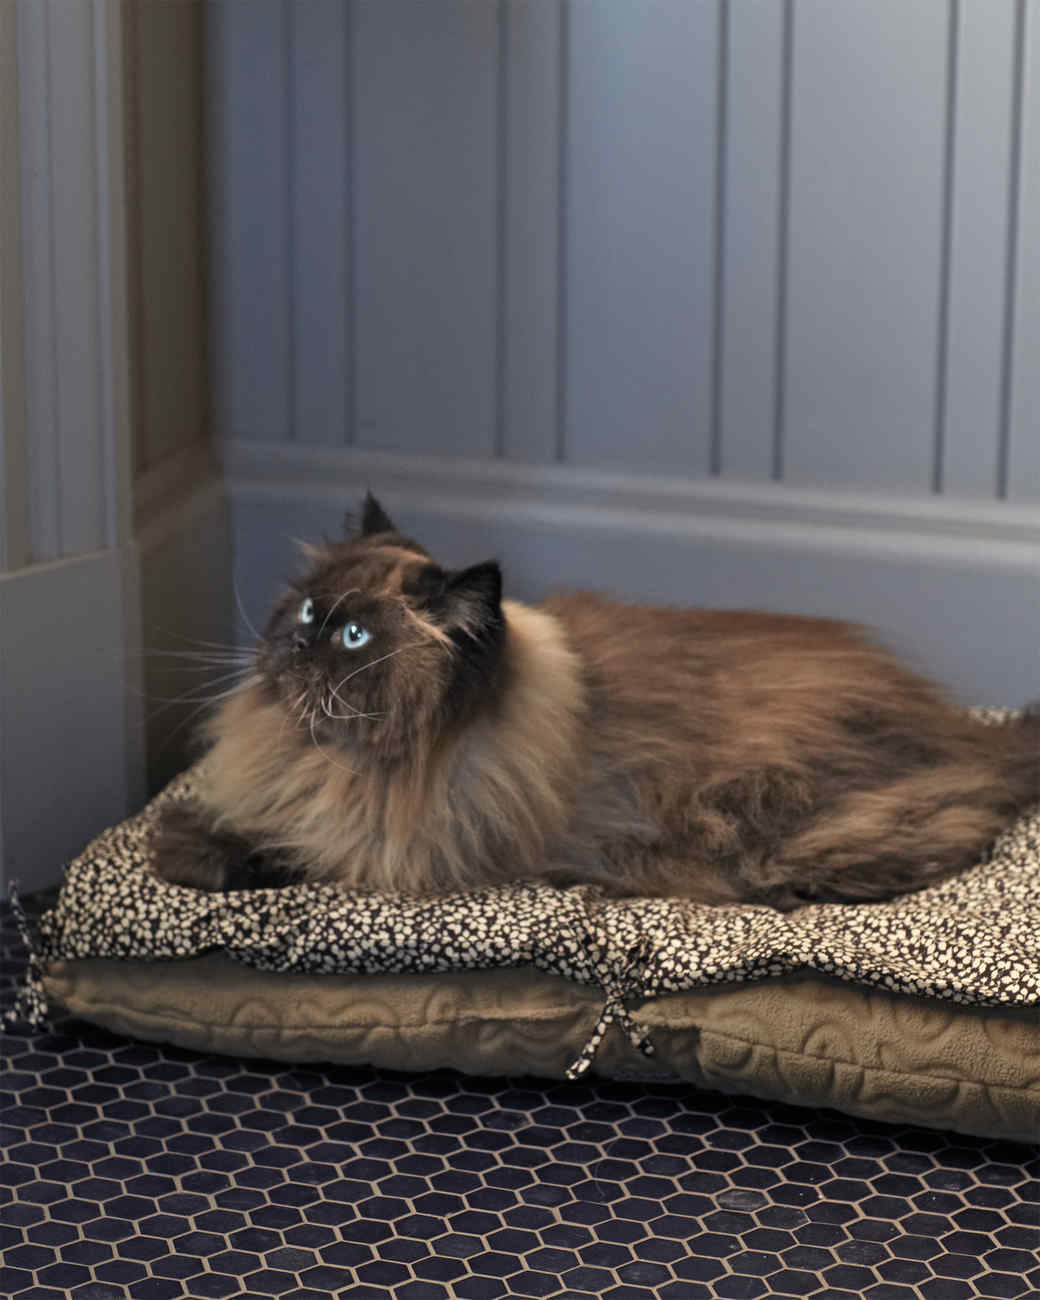 catnip-cat-bed-with-cat-0031-mld109636.jpg